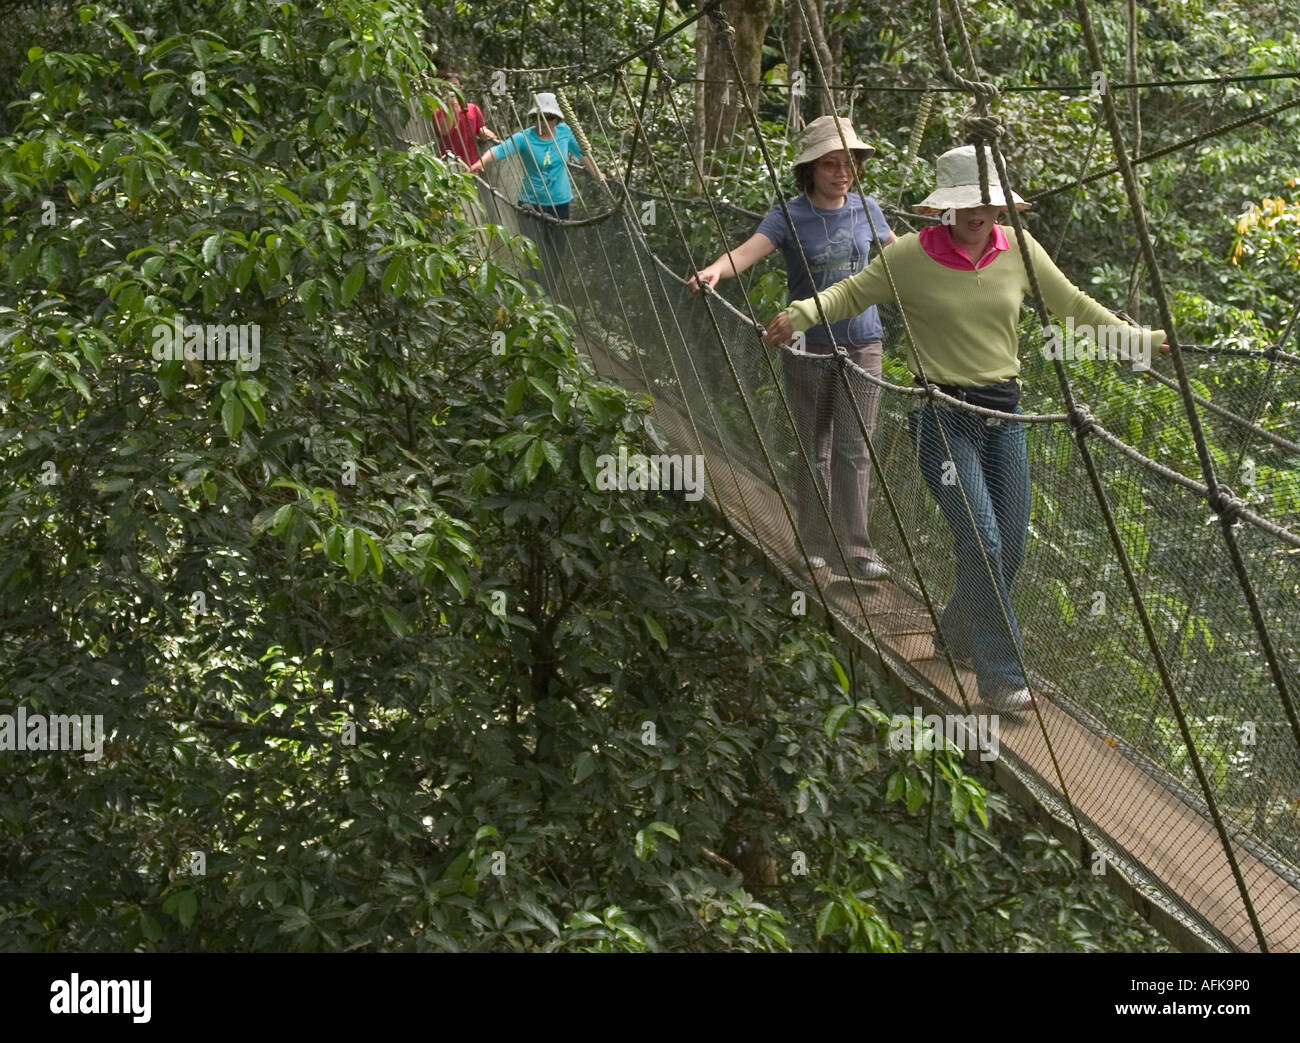 MALAYSIA SABAH PORING HOT SPRING TOURISTS ON TREE TOP CANOPY WALKWAY : tree top canopy - memphite.com